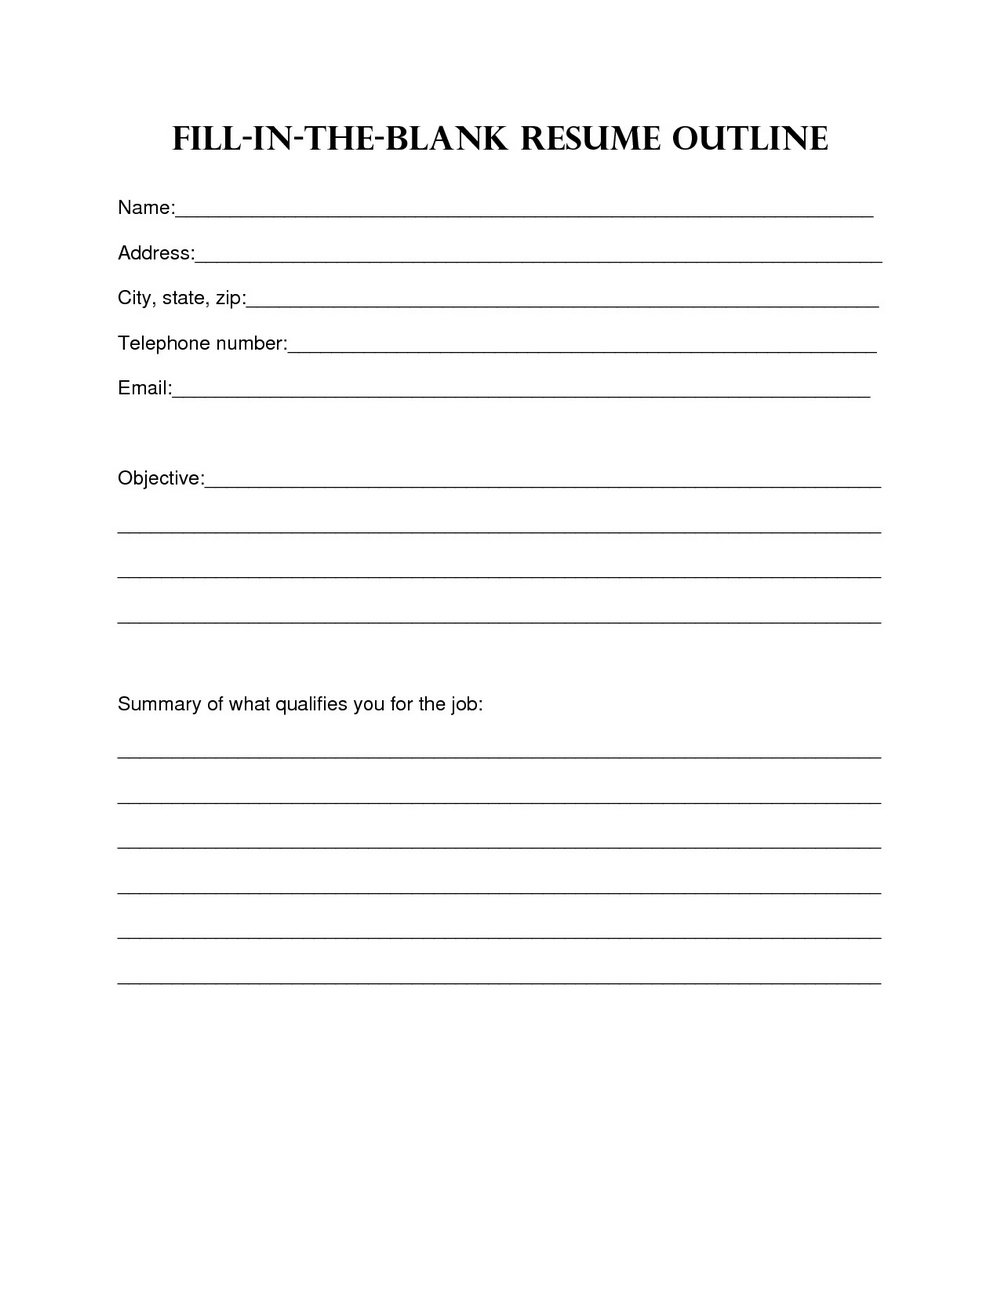 Fill In The Blank Resume Cover Letter